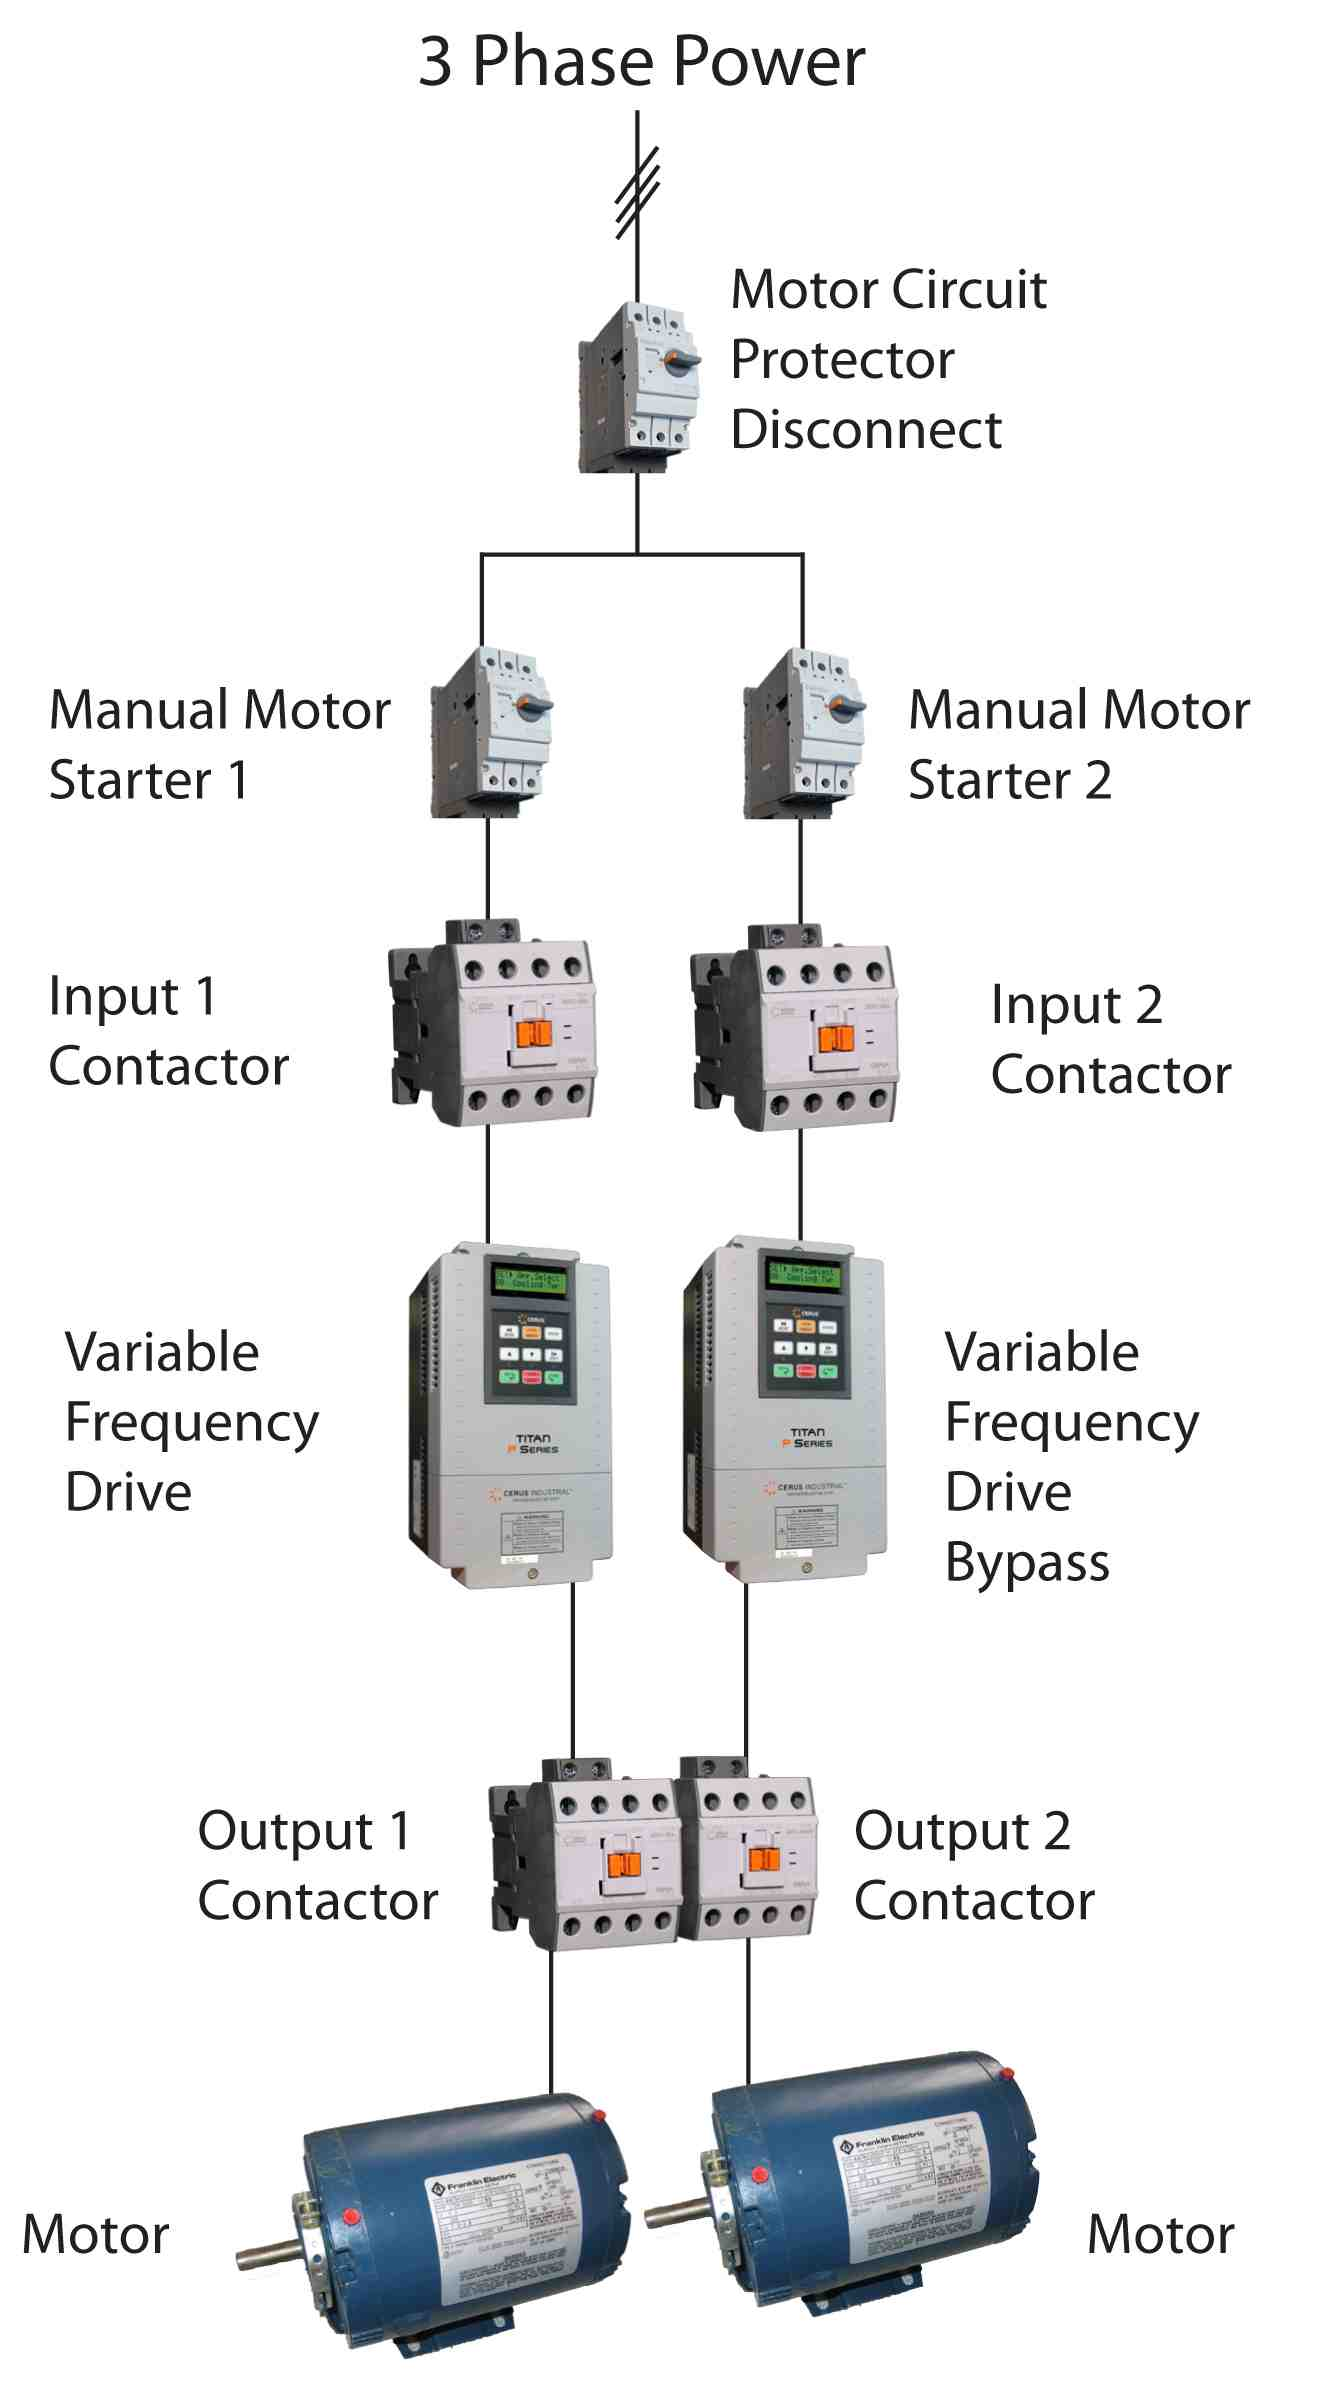 Vfd Wiring Diagram : wiring, diagram, Consulting, Specifying, Engineer, Exclusive:, Bypasses, Backups:, Which, Should